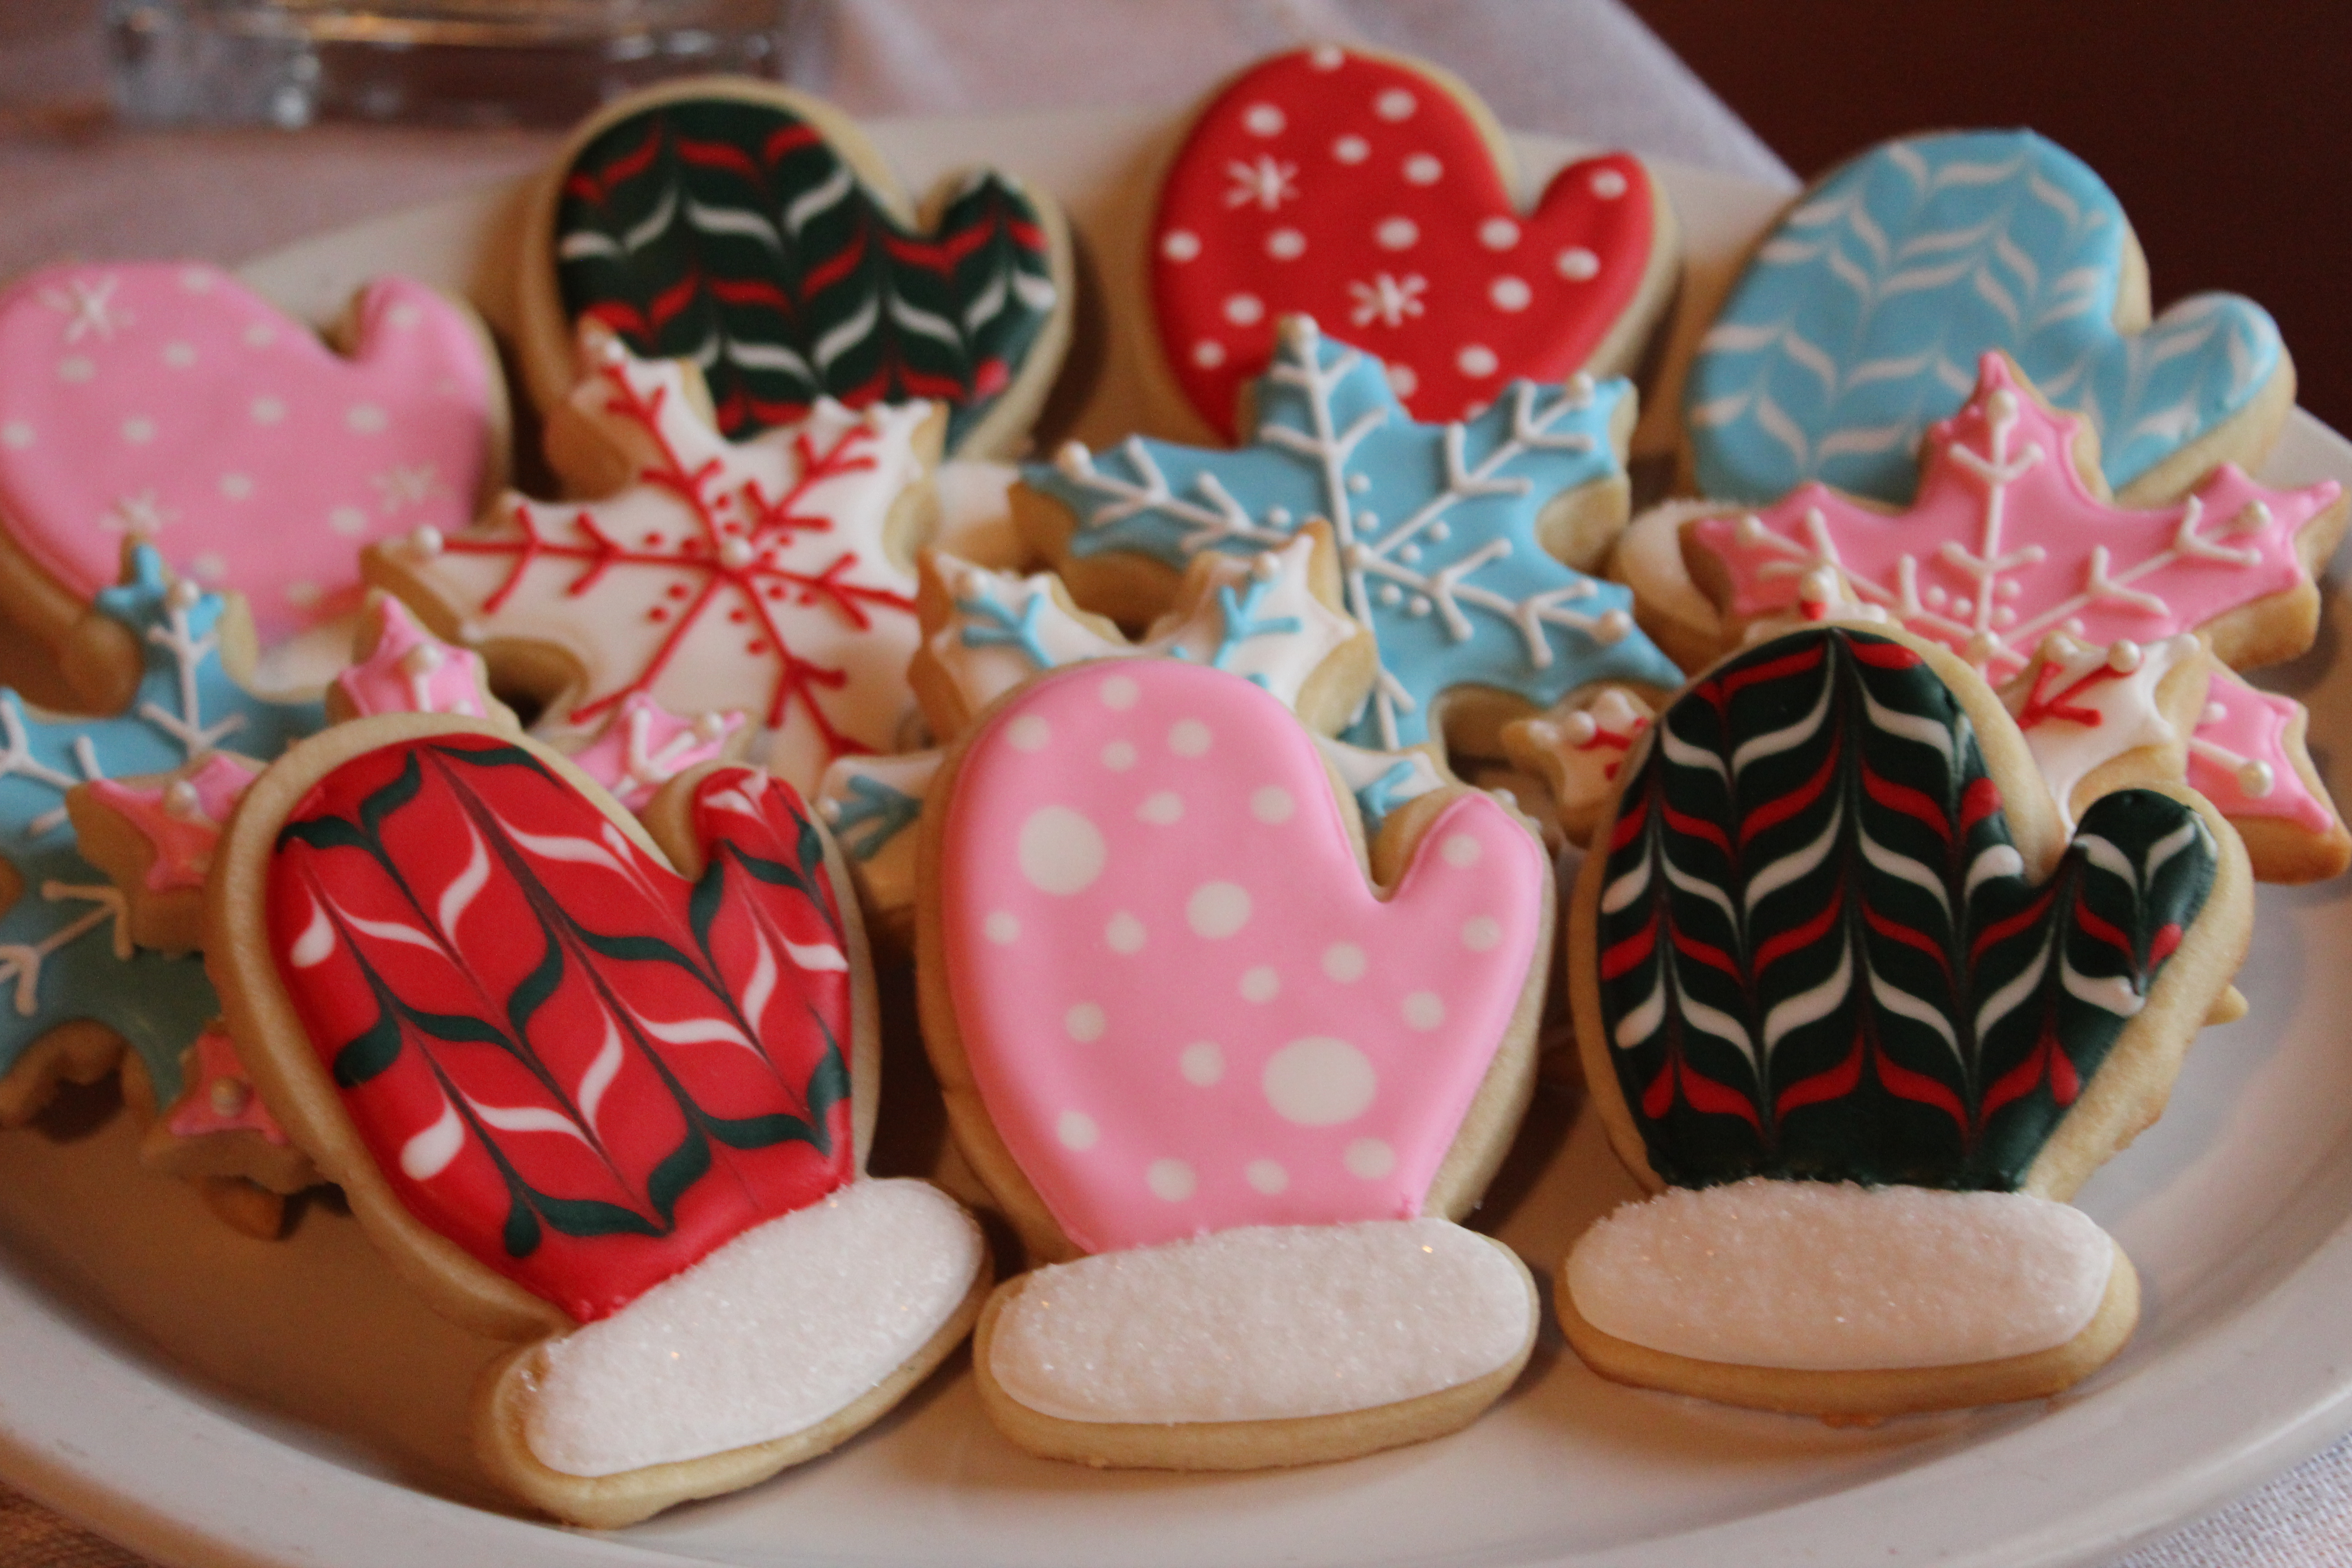 10 Tips [for Successful Sugar Cookie Decorating]